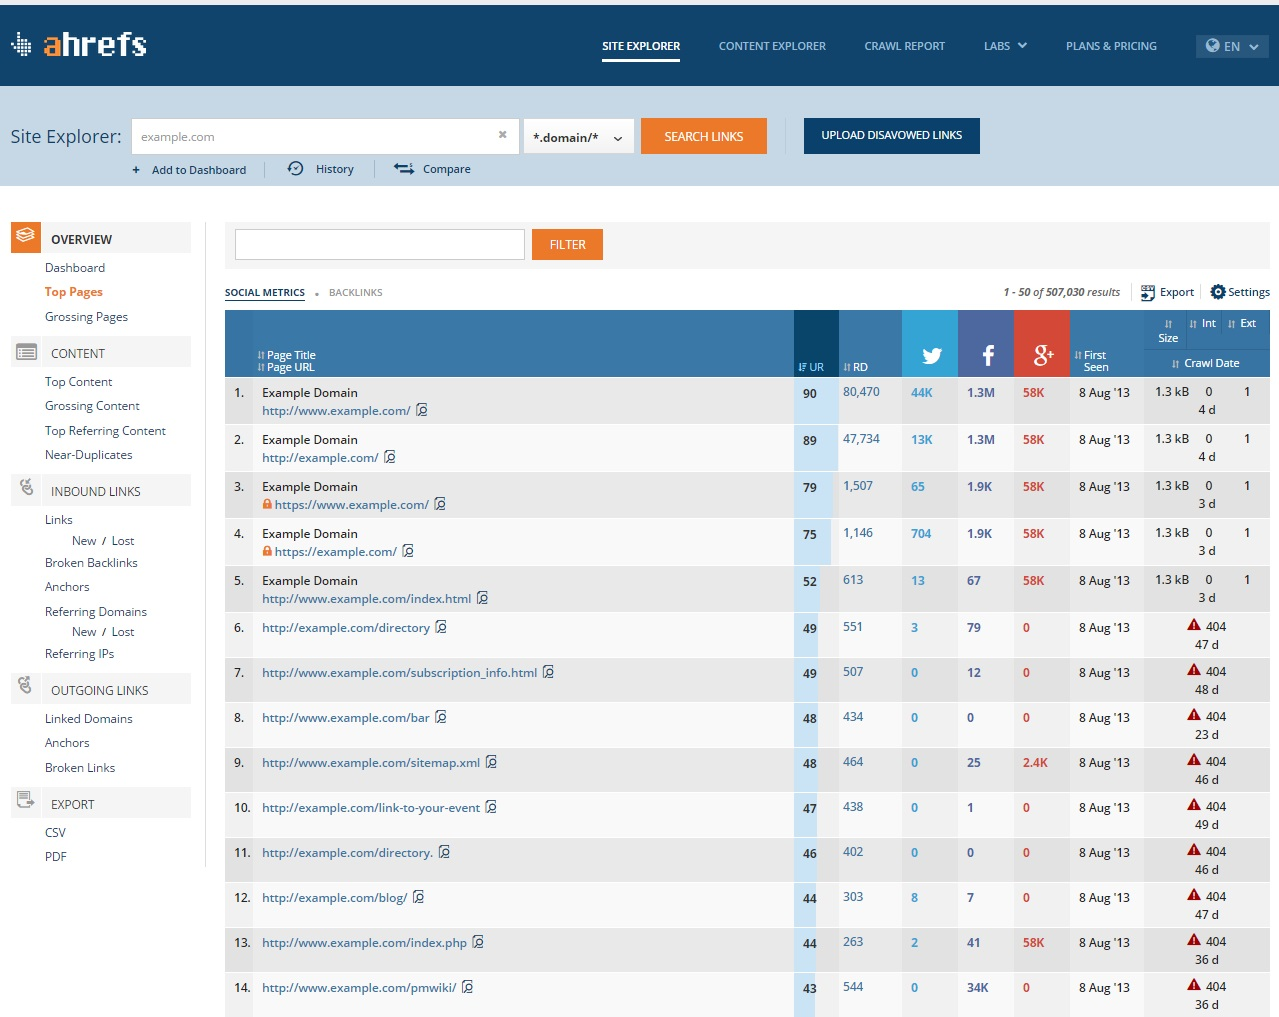 Ahrefs, Top Pages